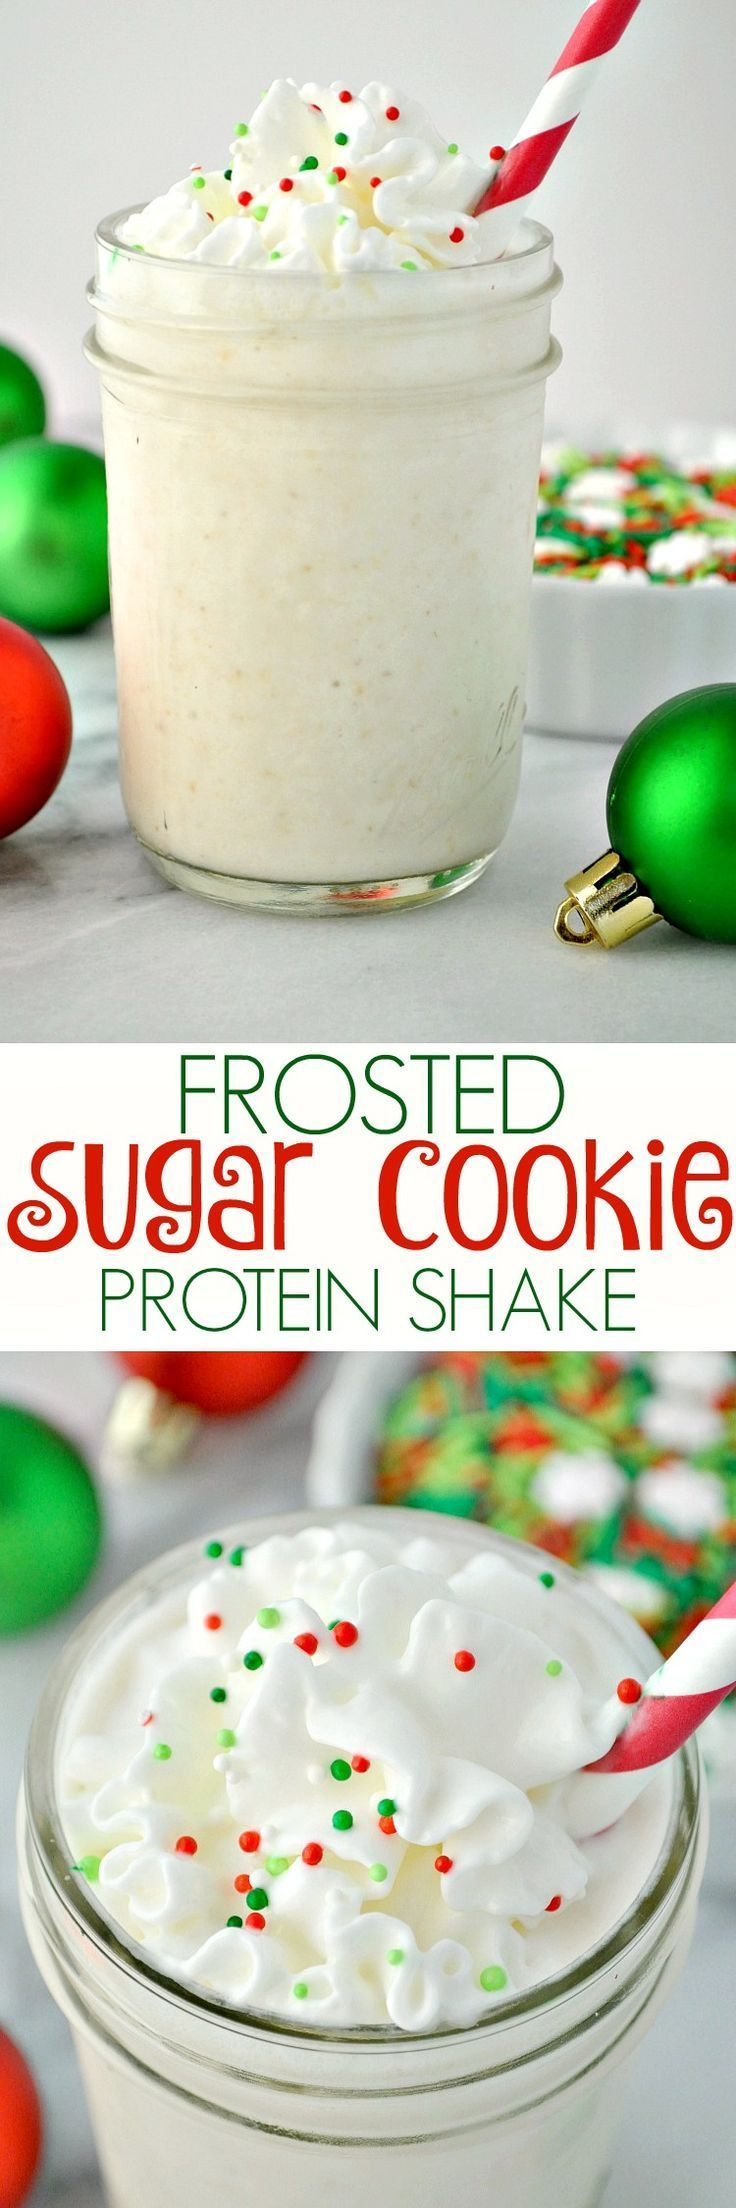 Indulge in a sweet, thick, and creamy smoothie that only tastes decadent! With all of the flavors of your favorite seasonal treat, this FROSTED SUGAR COOKIE PROTEIN SHAKE is a delicious and healthy breakfast or snack to keep you fit and trim through the holidays! Gluten-Free, Vegan, Dairy-Free #MakeYourMove #ad @Kohls #protein #shake